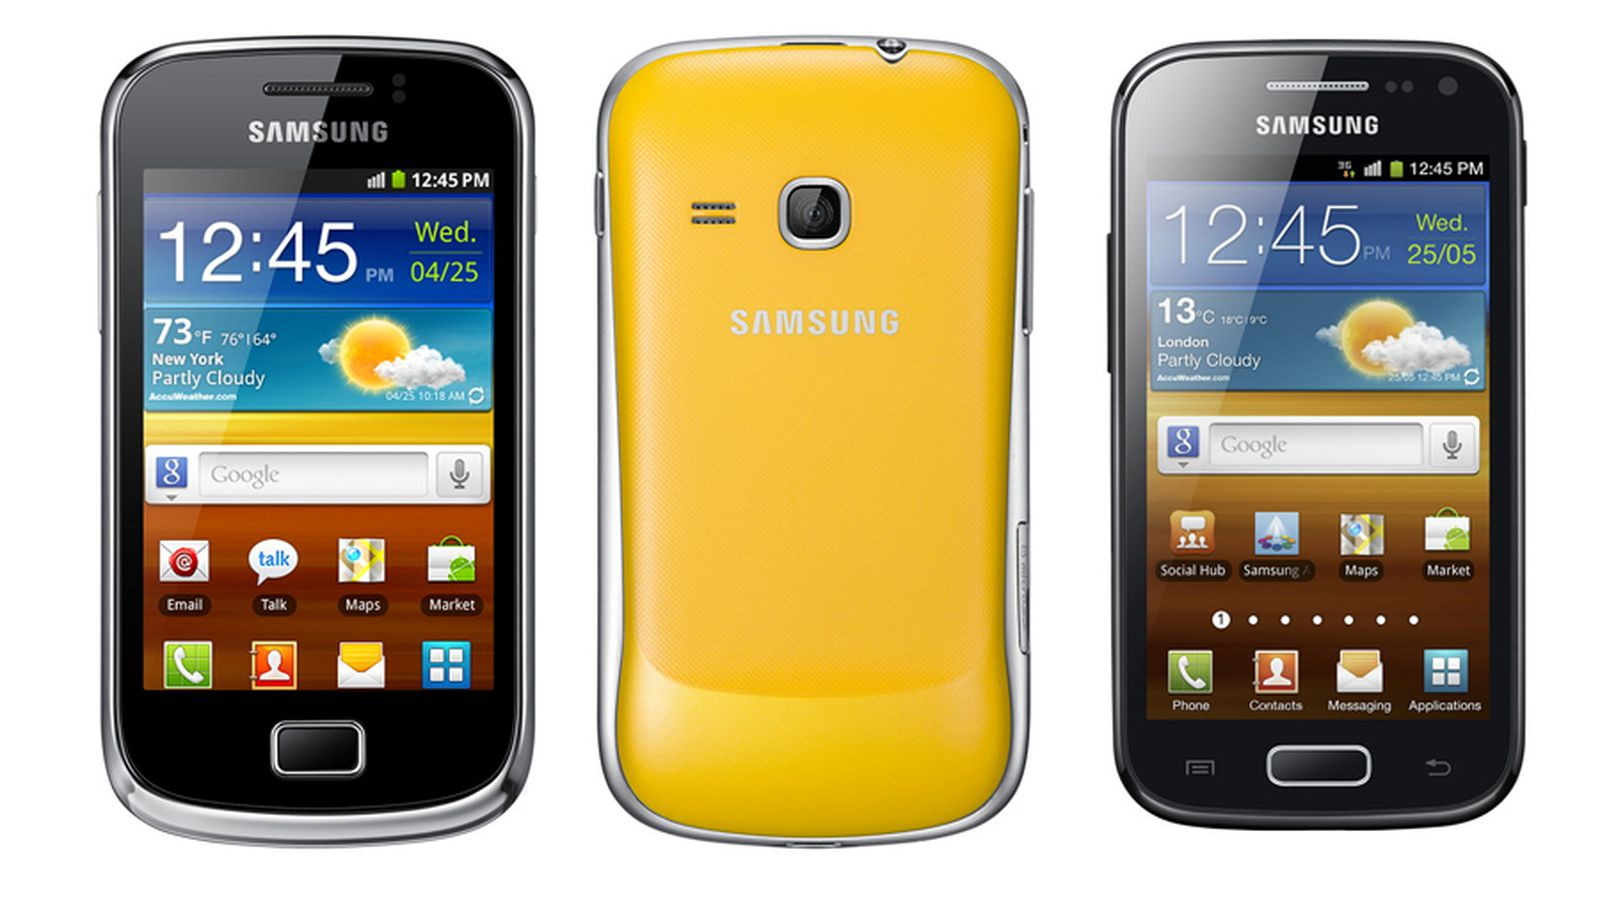 Samsung Galaxy Ace 2 Libre Samsung Announces Galaxy Ace 2 And Galaxy Mini 2 Adds Nfc